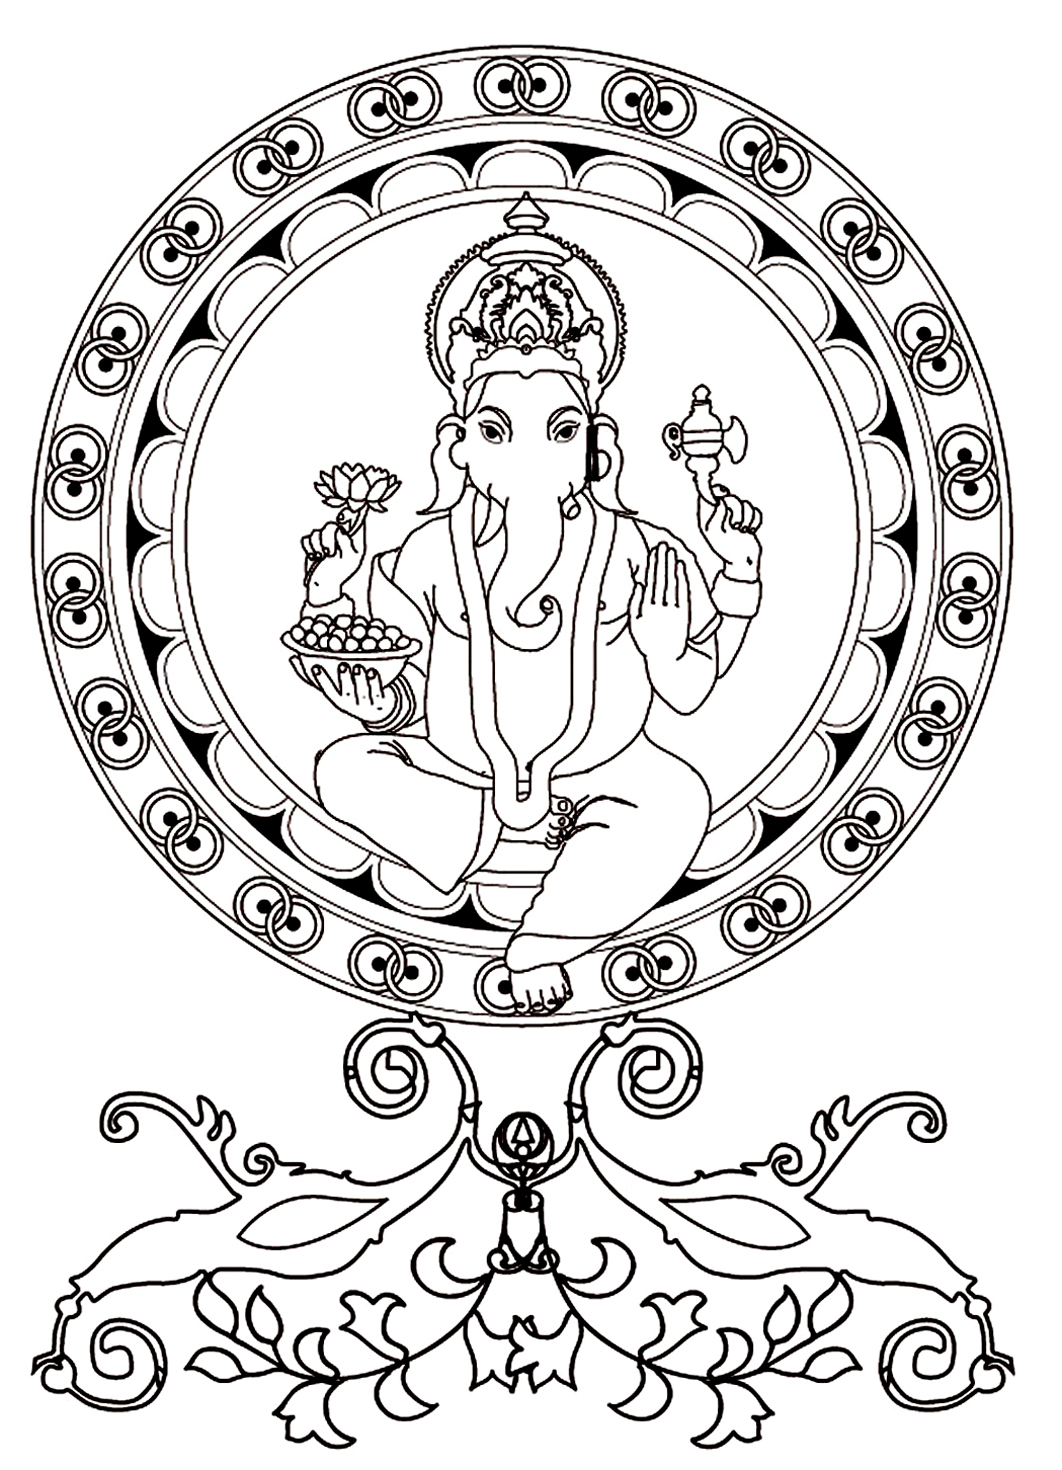 India coloring pages for adults - Ganesh Image With Elephant Ganesh From The Gallery India Bollywood